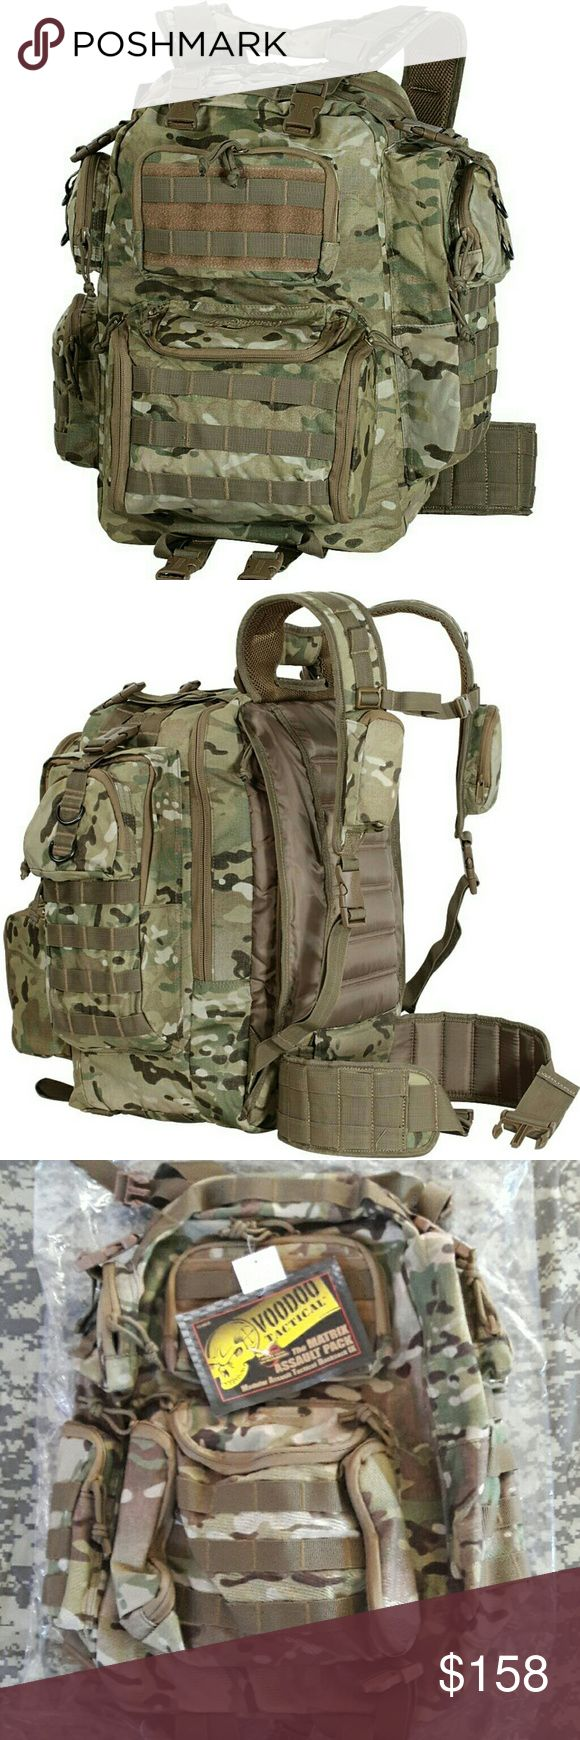 """Tactical Backpack Matrix Assault Pack Multicam Updated and enhanced in 2009, this larger Voodoo Tactical MATRIX rucksack 20""""T x 11""""W x 7""""D) combines the best features of the newest high-tech civilian packs with those demanded by the tactical community.  This pack was not designed in a vacuum; military, law enforcement and multiple federal agencies provided input into the design and helped field test this backpack. The result is a comfortable, feature-rich pack designed for the future instead…"""